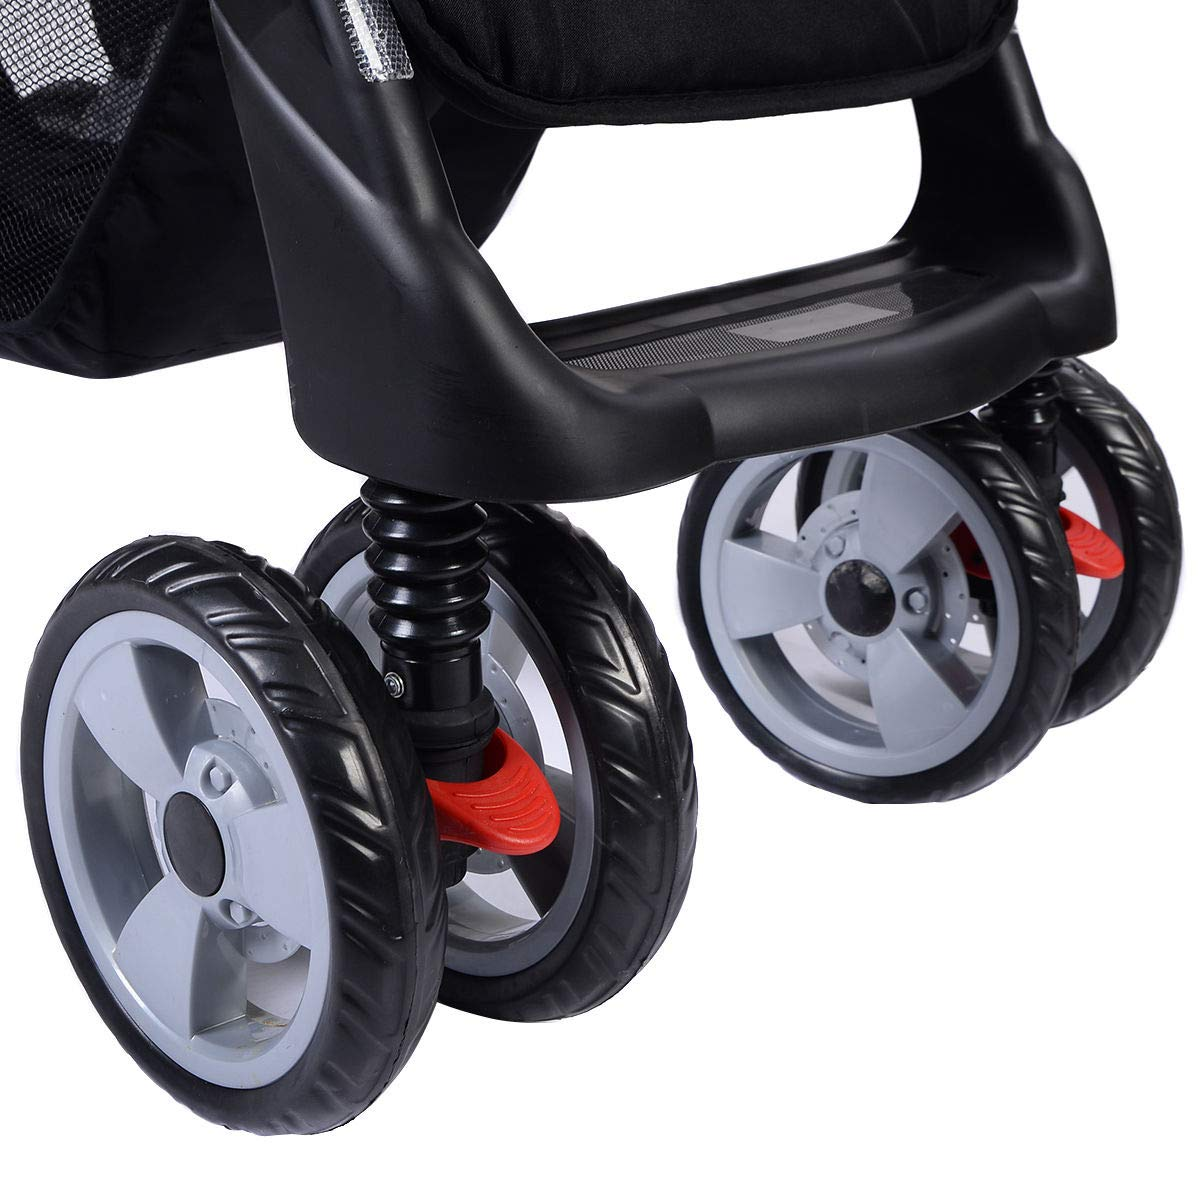 Foldable Twin Baby Double Stroller Kids Jogger Travel Infant Pushchair Gray by Apontus (Image #4)